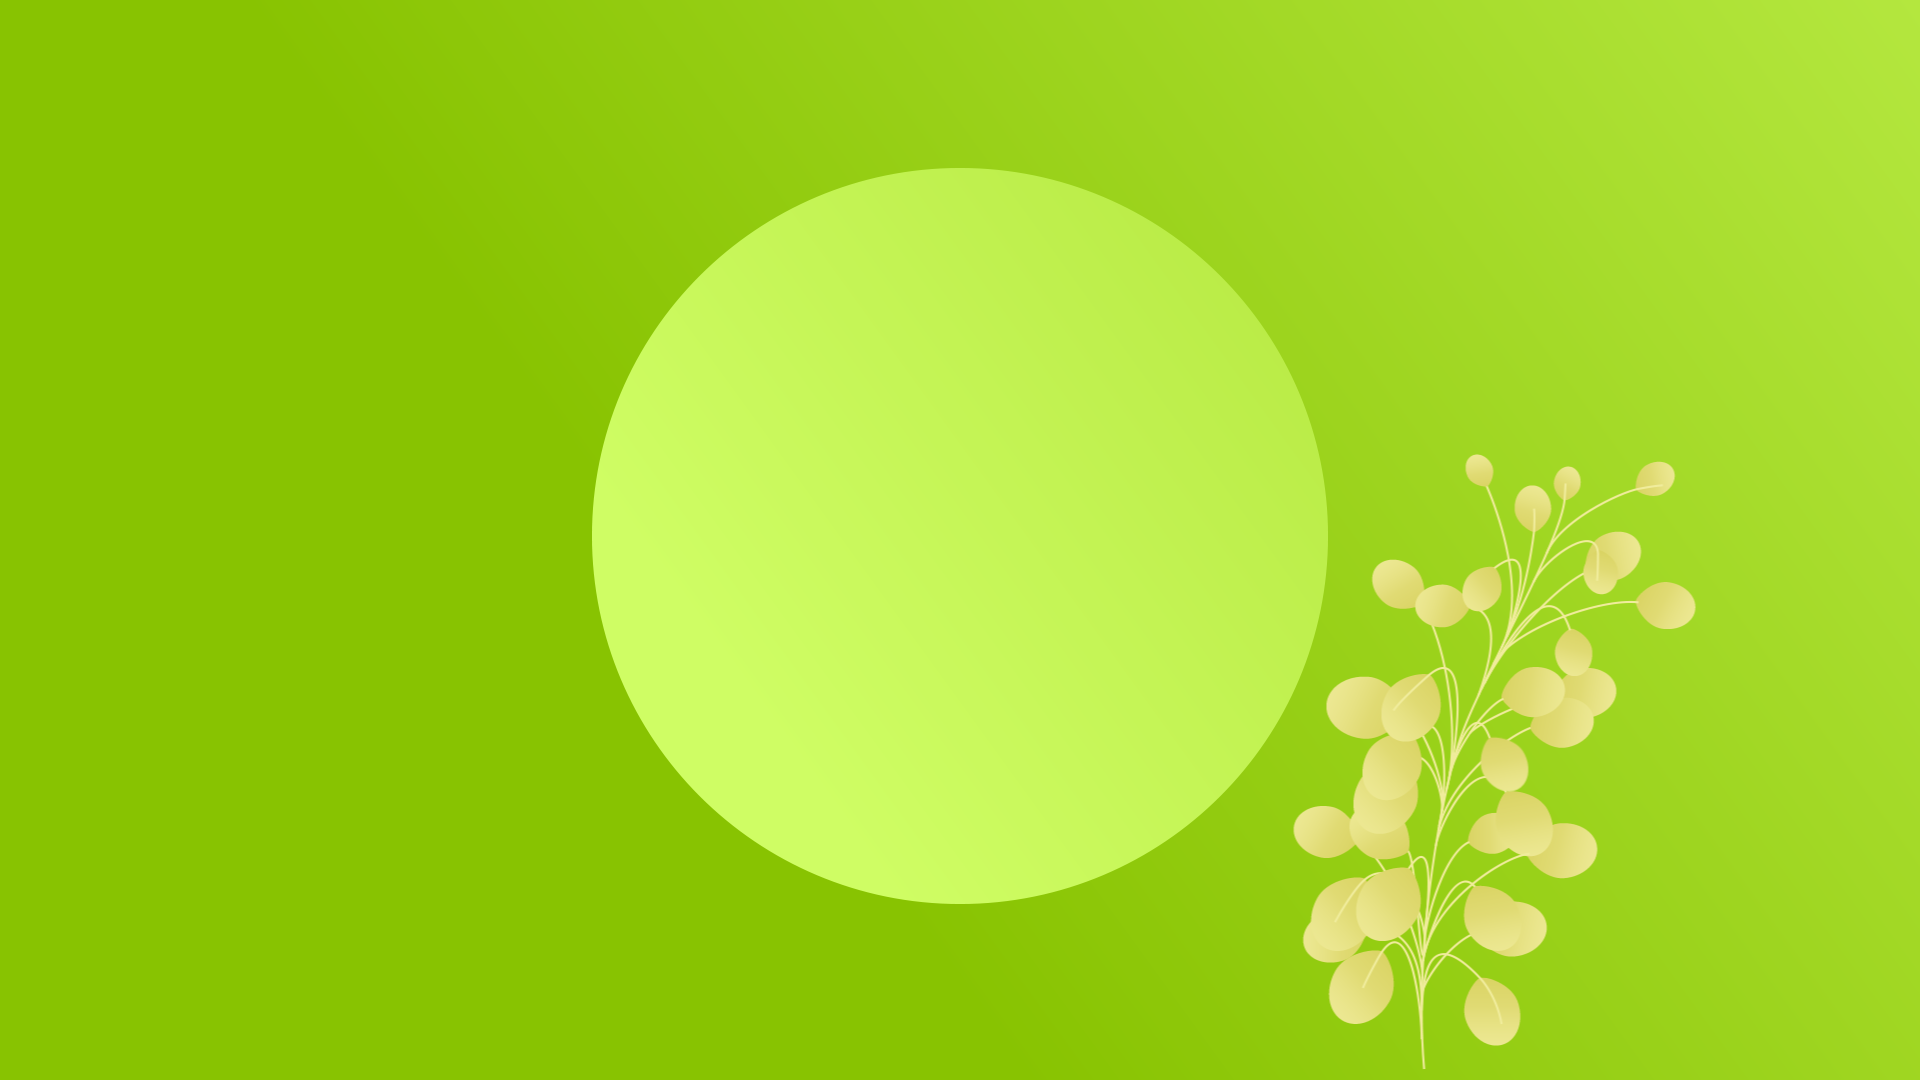 Conversational marketing, inner circle of creative marketing, green circle on green background with growing green plant.